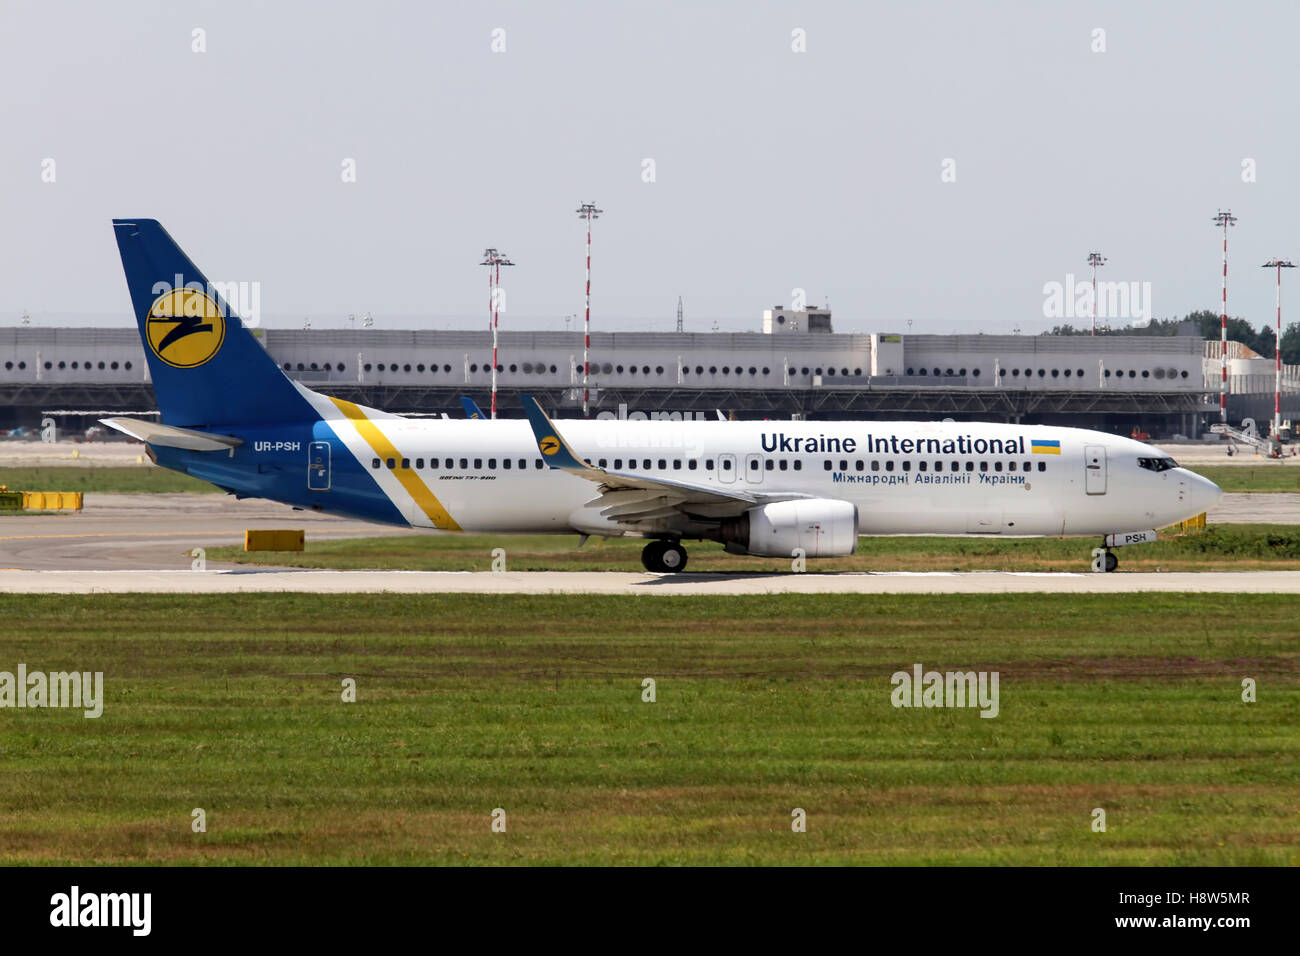 Ukraine International Airlines Boeing 737 Next Gen, at Milan - Malpensa (MXP / LIMC) Italy - Stock Image